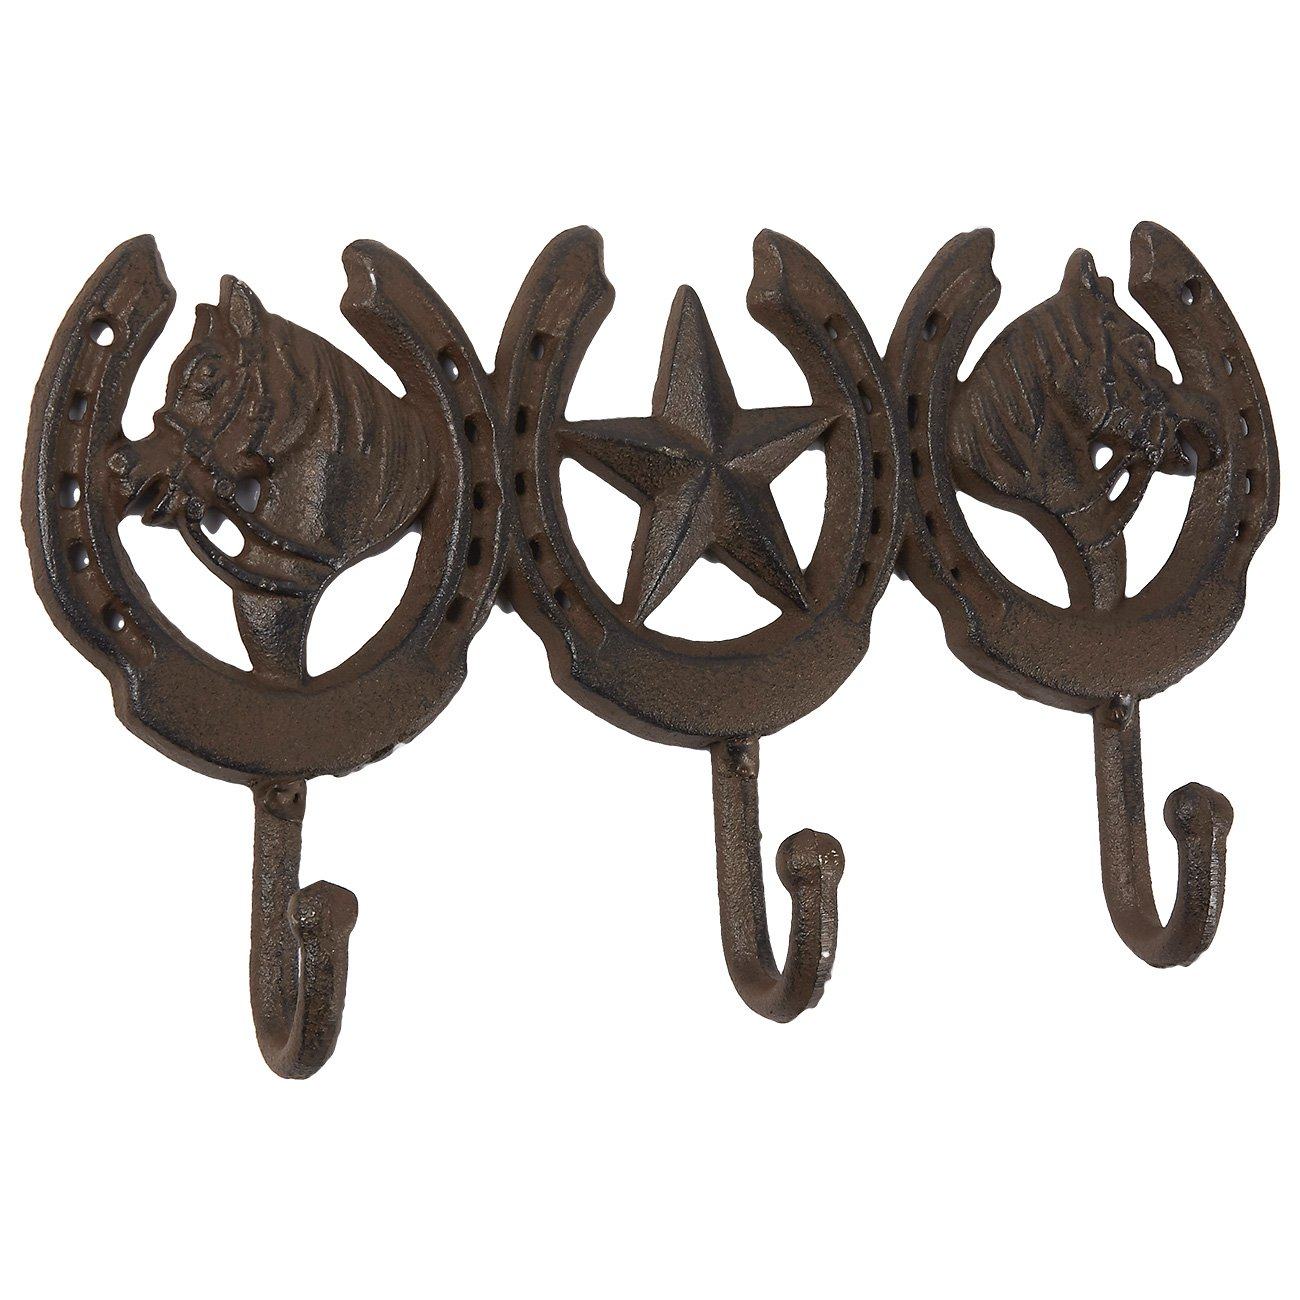 Rustic Iron Wall Hook, Vintage Coat Hook with Horse Design, Decorative Wall Mounted Hanger for Hats, Jackets, and Towels, 3 Hooks, Bronze, 10.8 x 6.3 inches